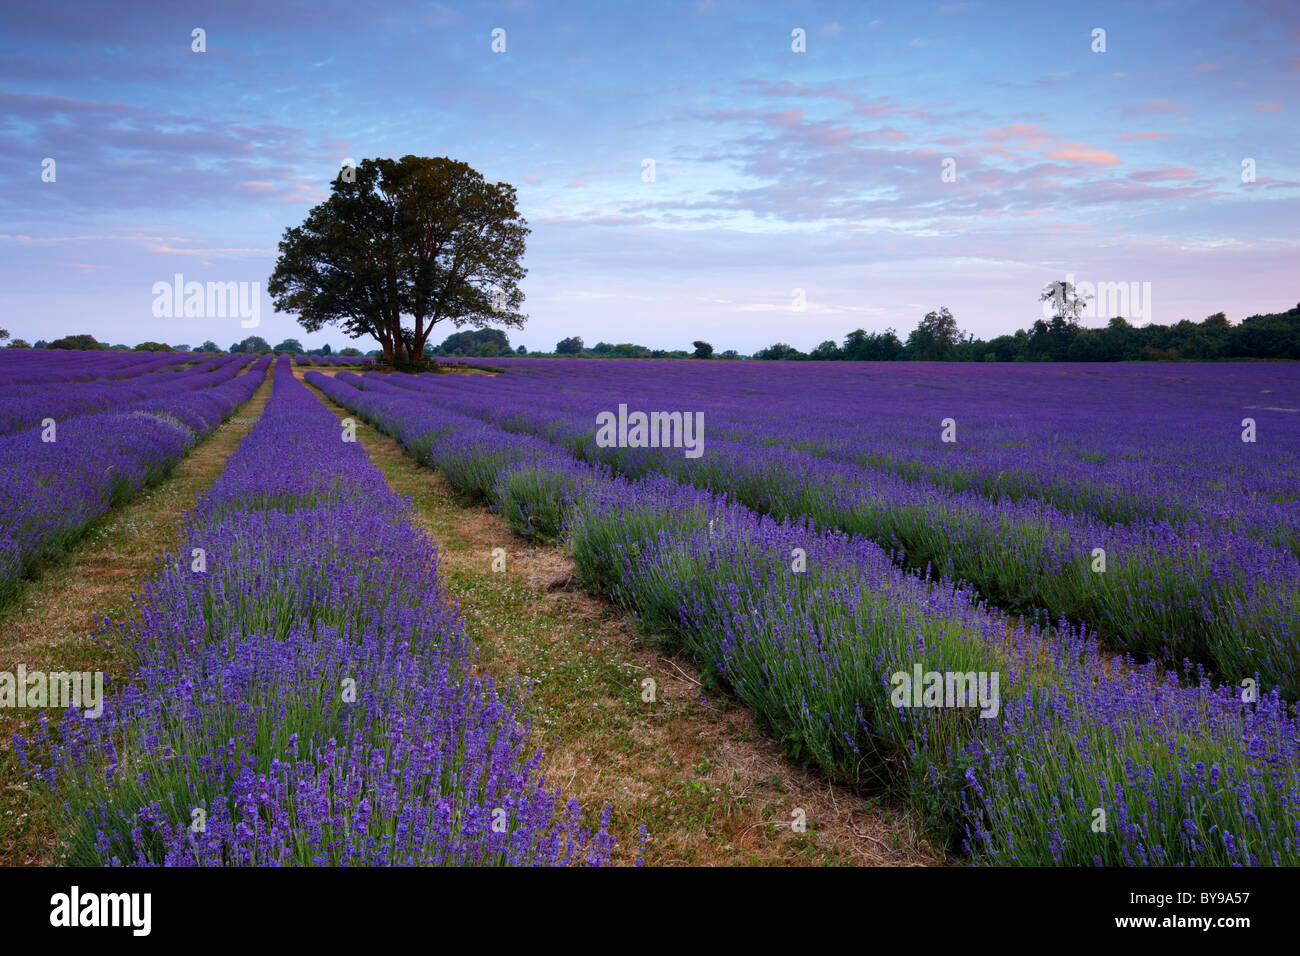 Organically grown lavender field. The scent from the flowers fills the morning air with a beautiful perfume. - Stock Image